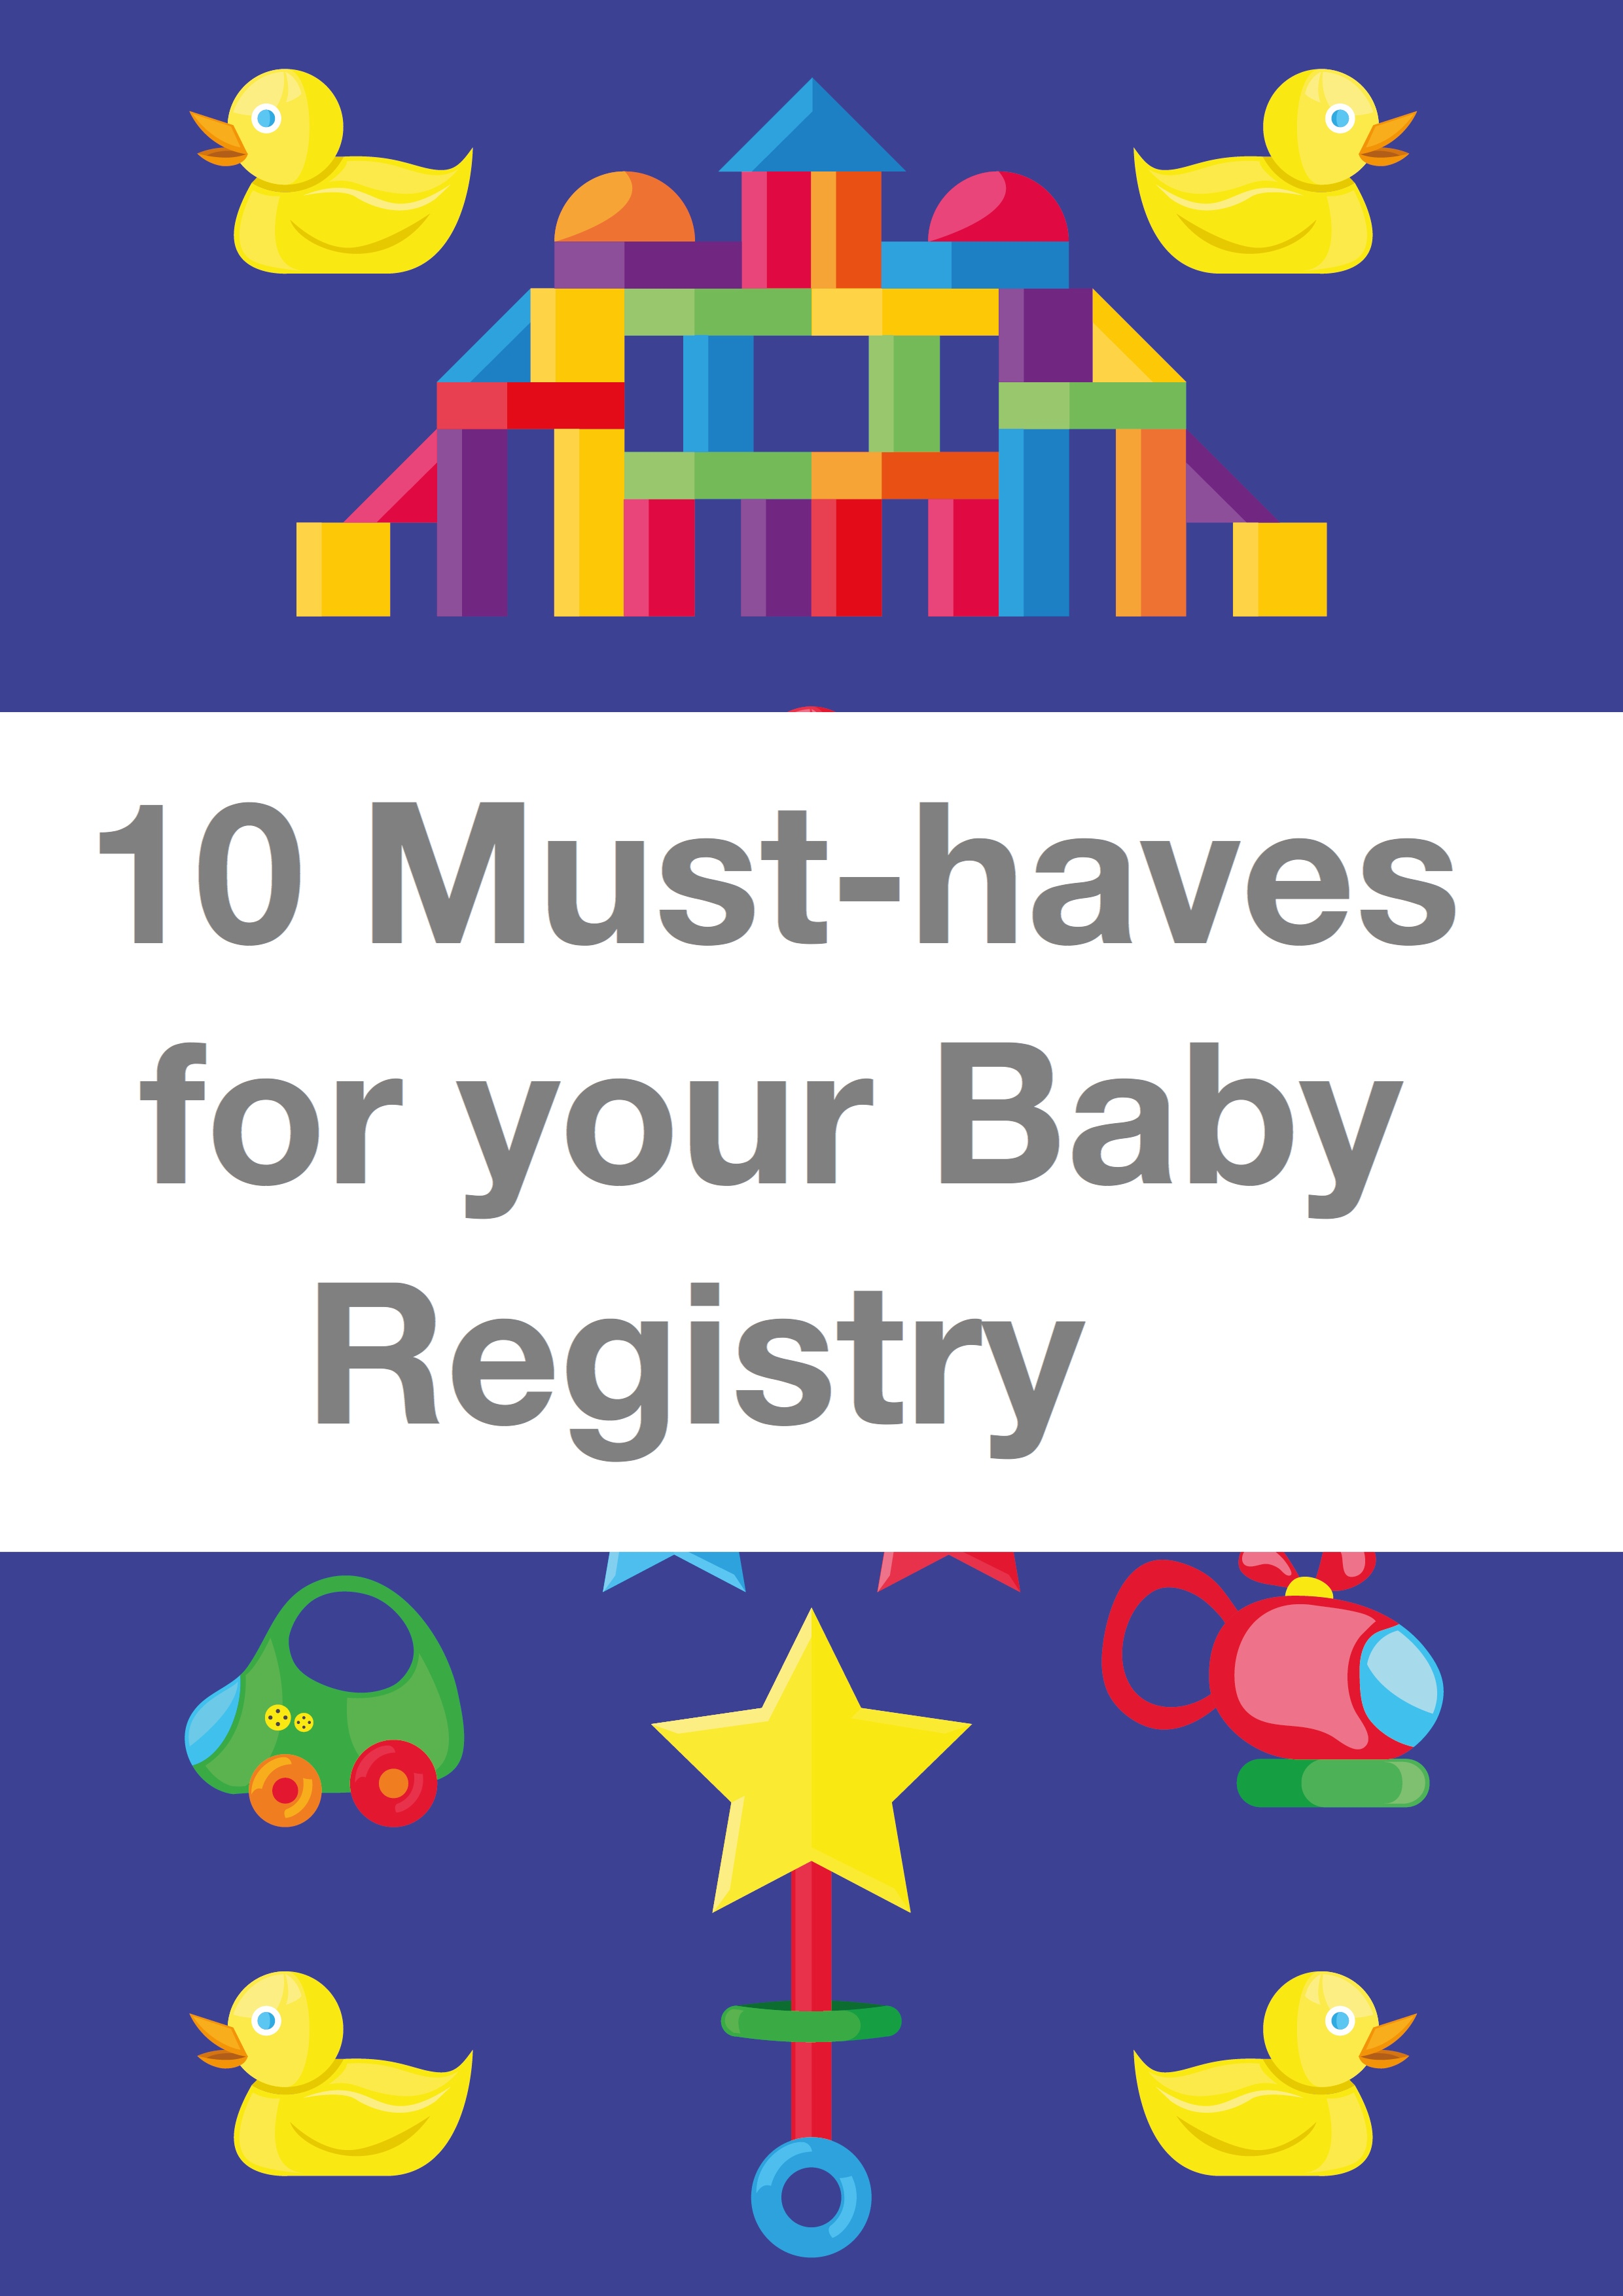 10 Must-haves for your baby Registry pin